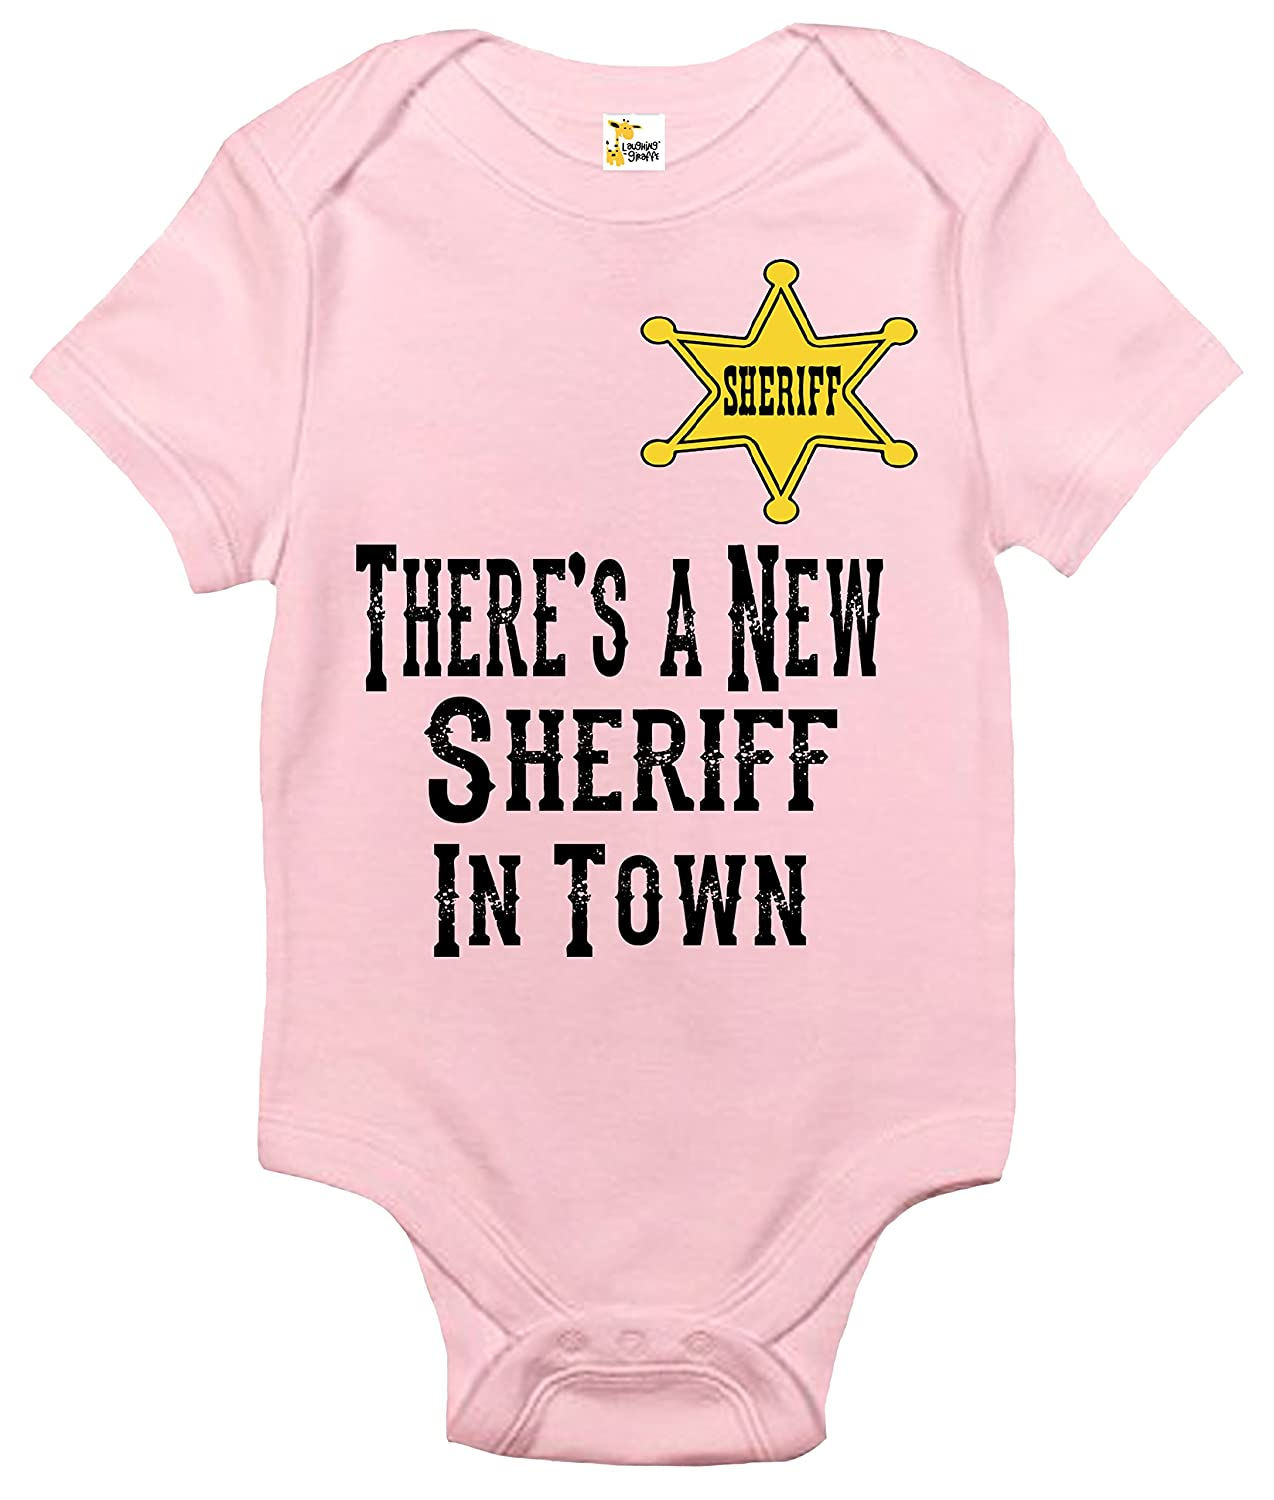 Theres New Sheriff In Town And Shes >> Amazon Com There S A New Sheriff In Town Baby Bodysuit Cute Baby